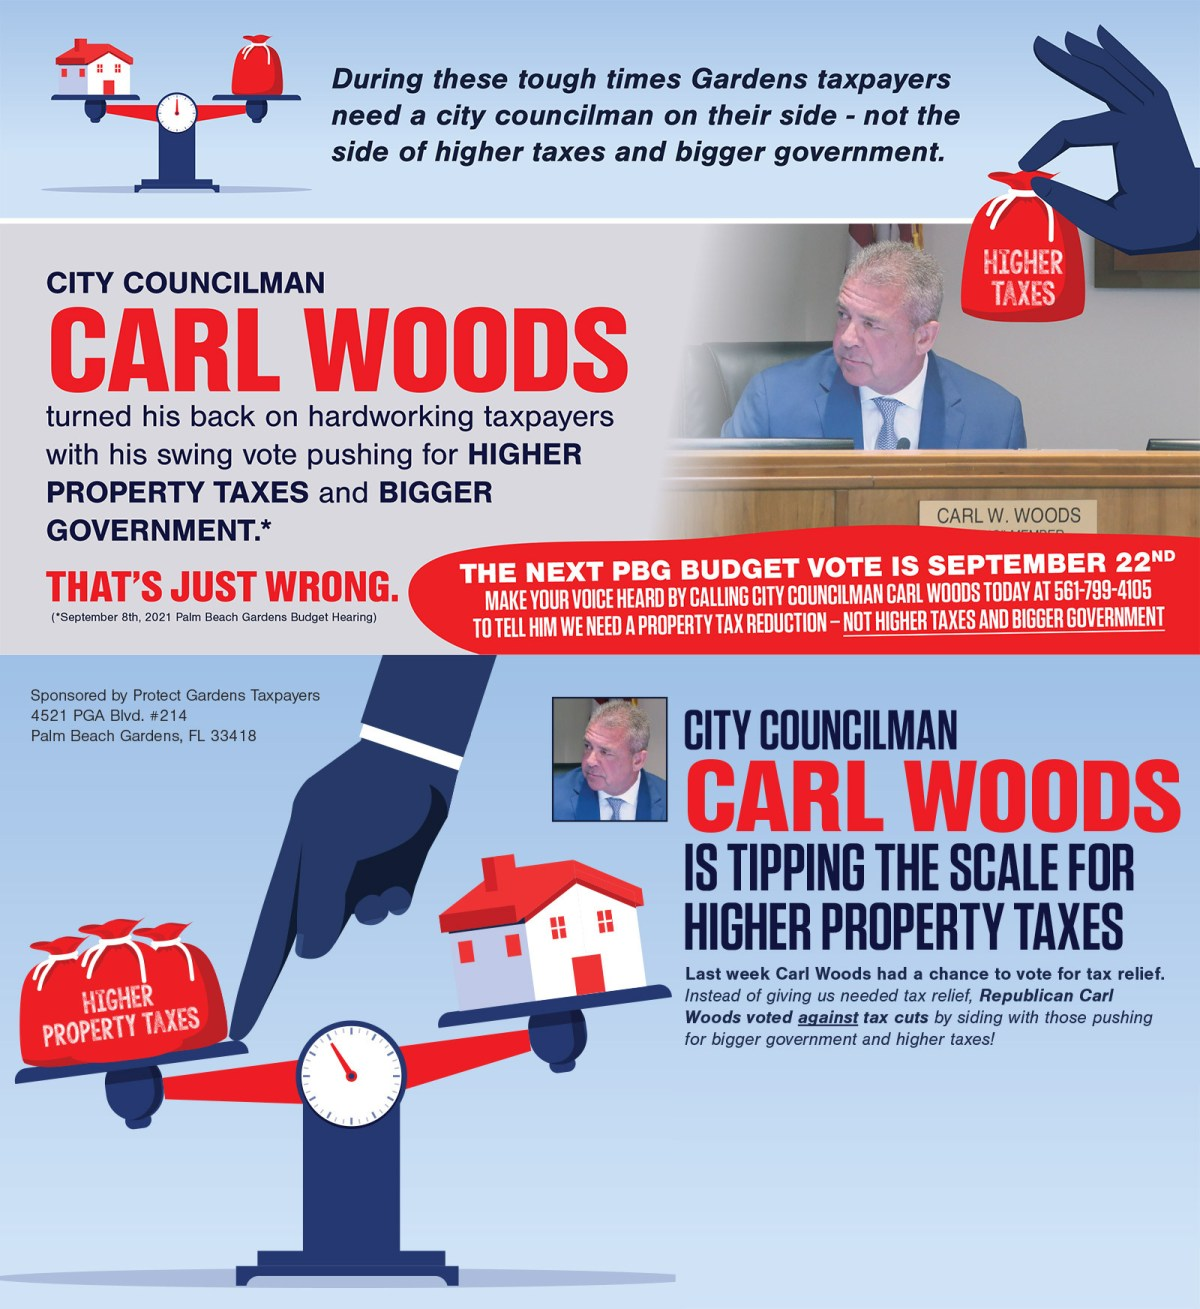 Political consultant sent attack ads over Woods' tax vote